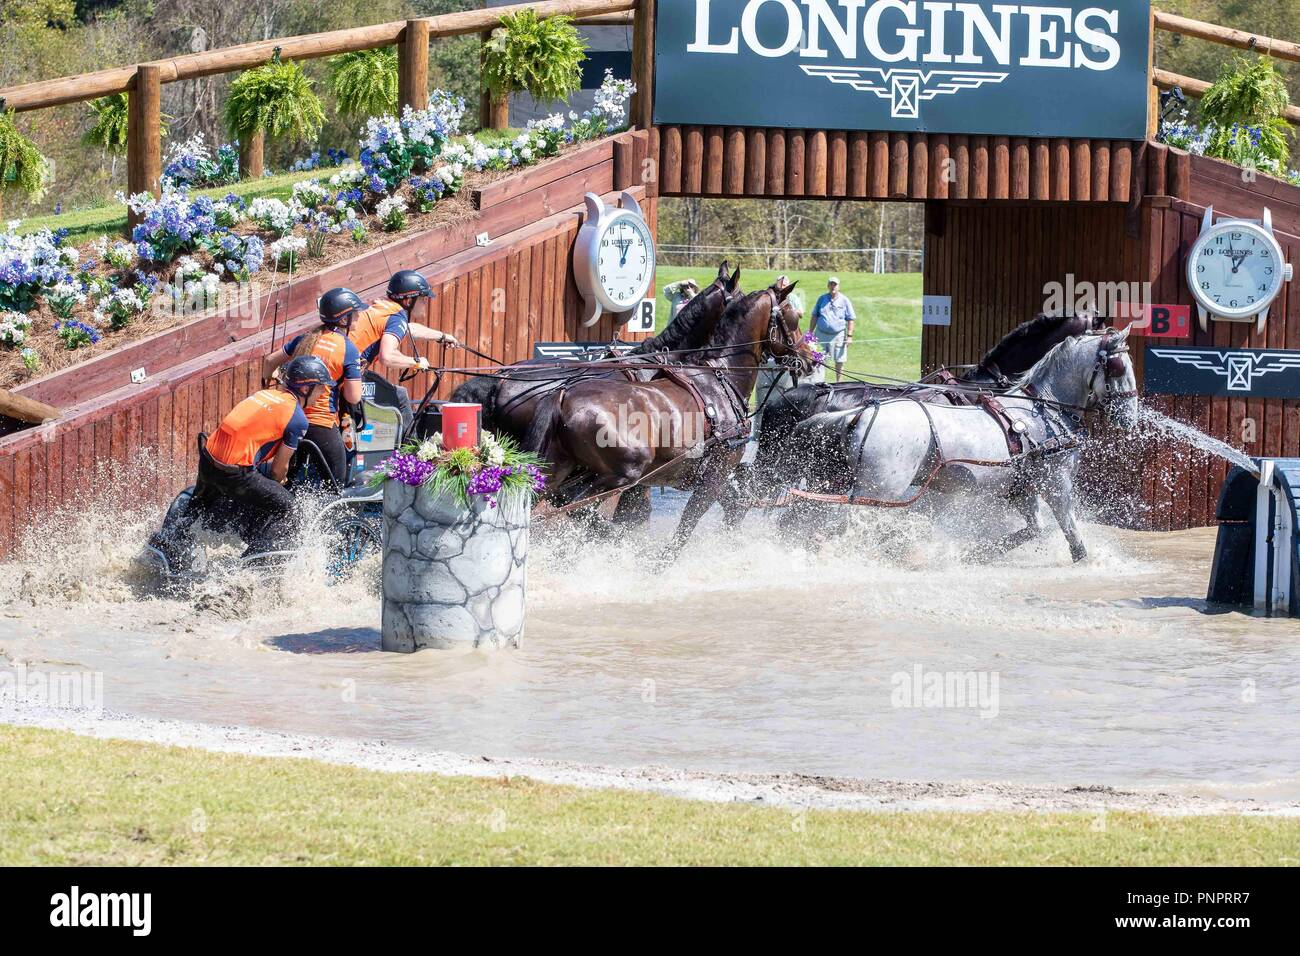 Tryon, USA. 22nd September 2018. Bram Chardon. NED. FEI World Team and Individual Driving Championships. AUS. Day 11. World Equestrian Games. WEG 2018 Tryon. North Carolina. USA. 22/09/2018. Credit: Sport In Pictures/Alamy Live News Stock Photo